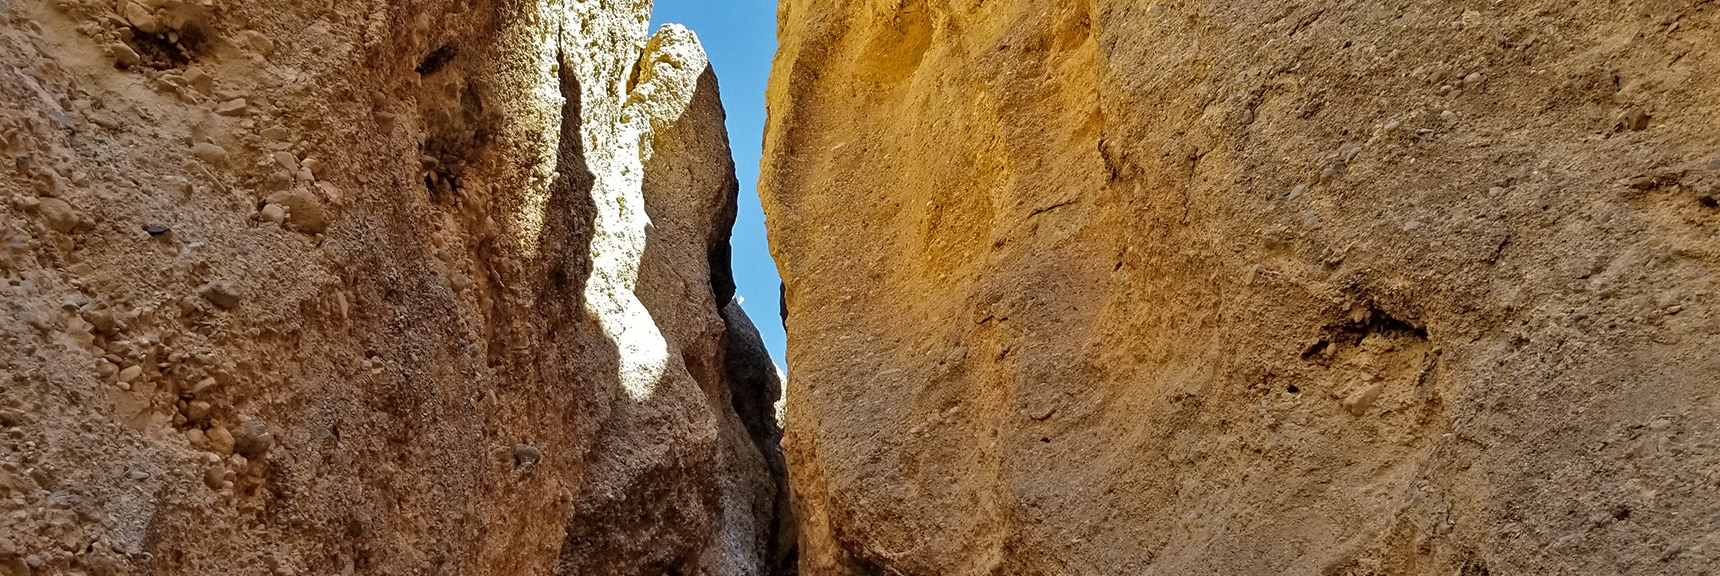 Looking Back Down a Narrow Portion of the Slot Canyon | Harris Springs Canyon | Biking from Centennial Hills | Spring Mountains, Nevada